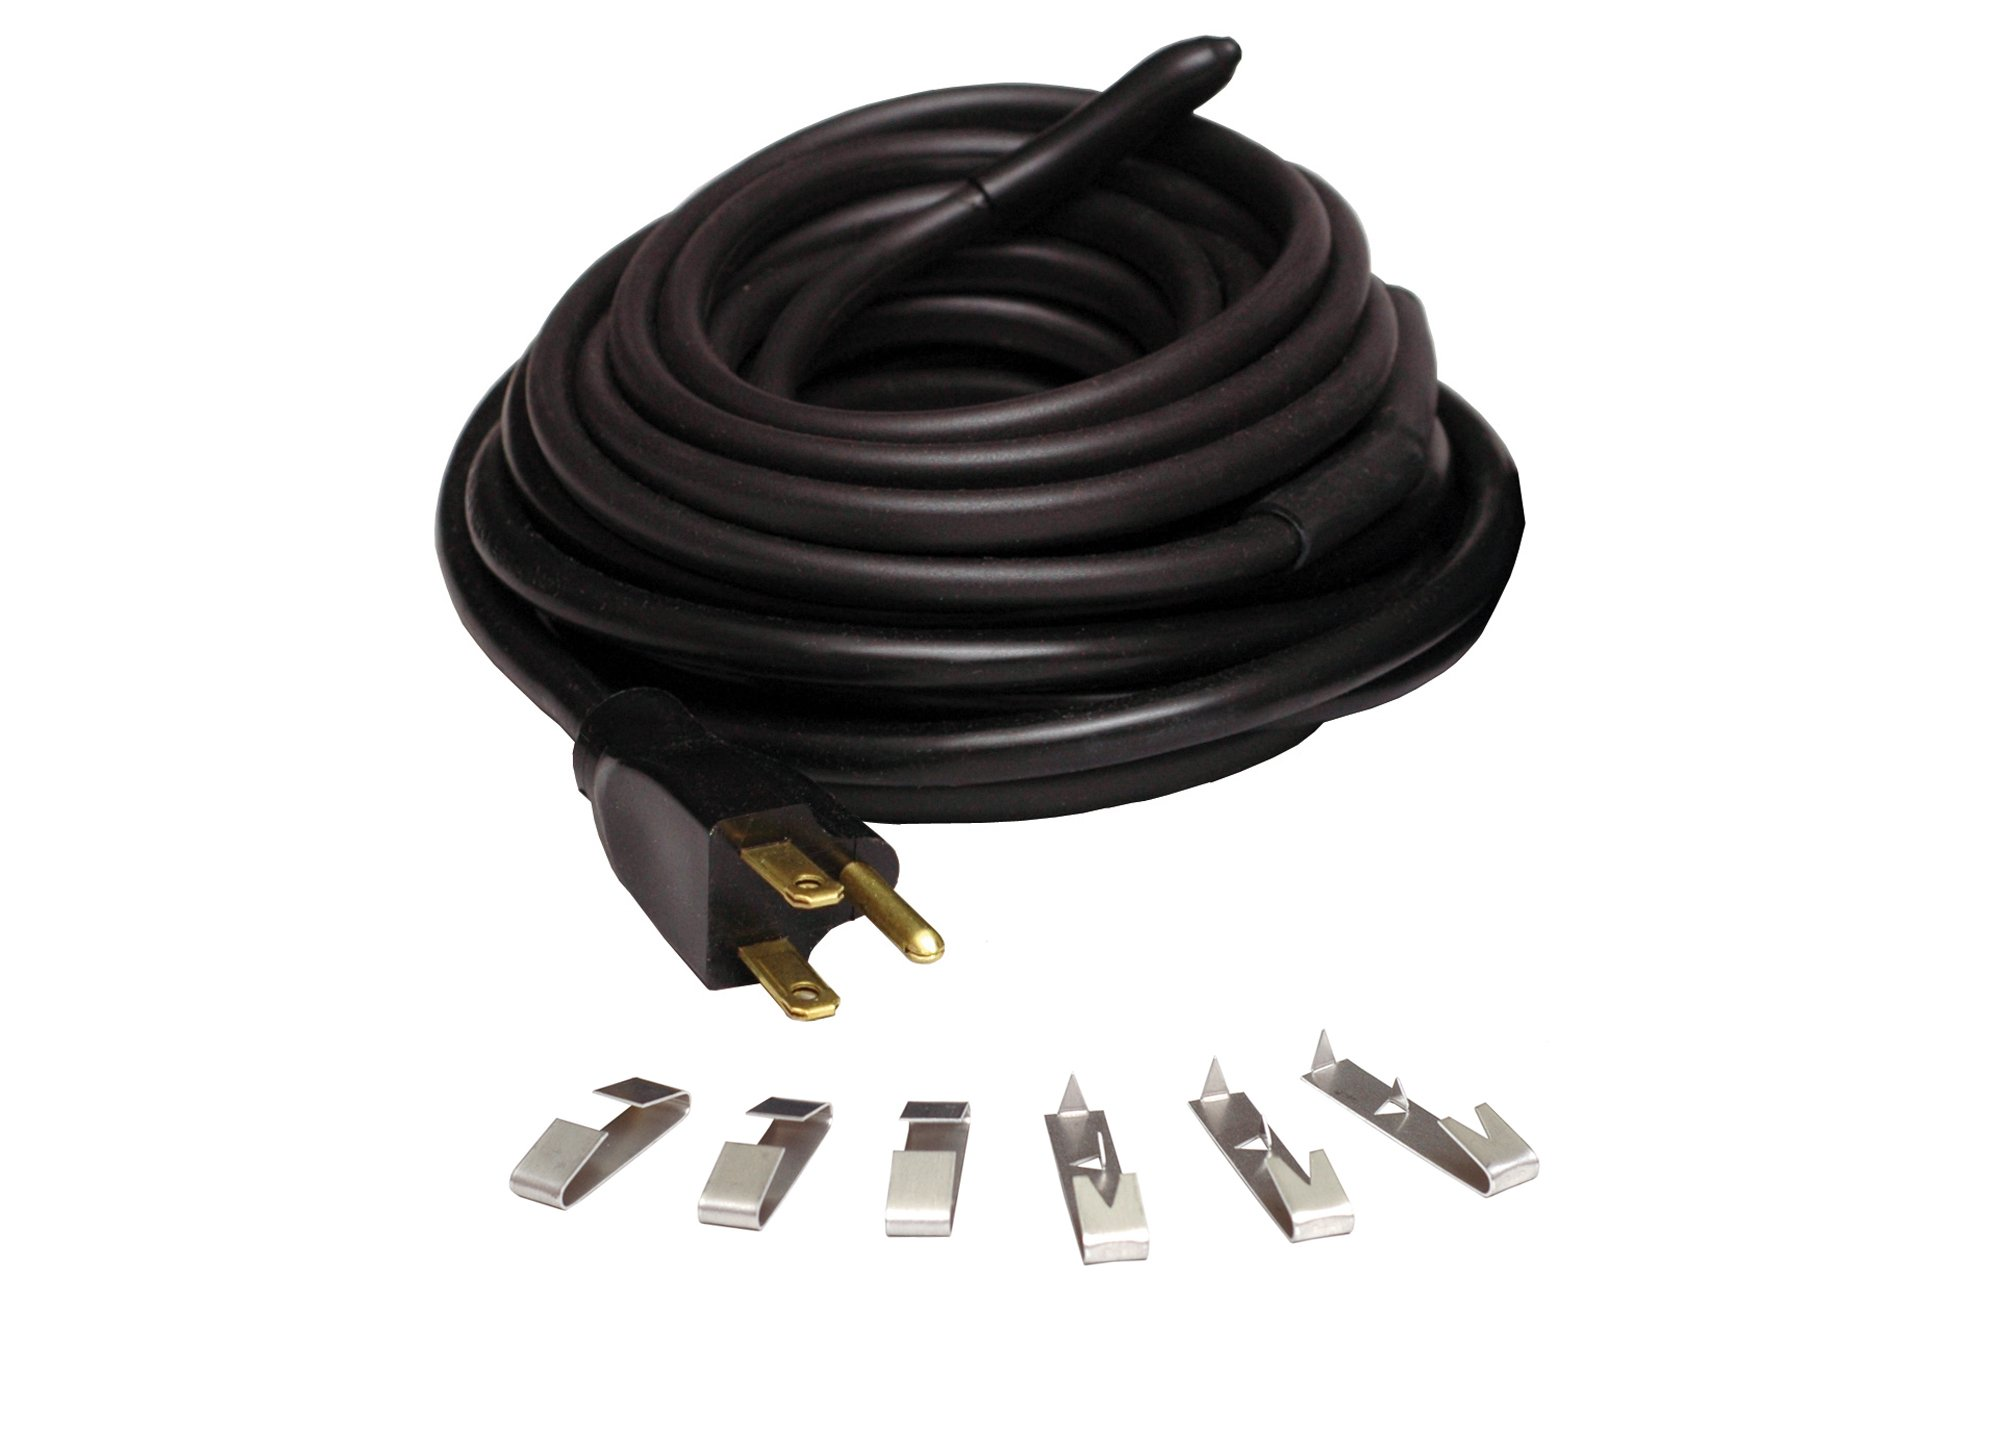 WRAP-ON Roof and Gutter Deicing Cable - 200' Black Electric Heating Cord with 3 Prong Plug & 120 Volt Operation - 14201